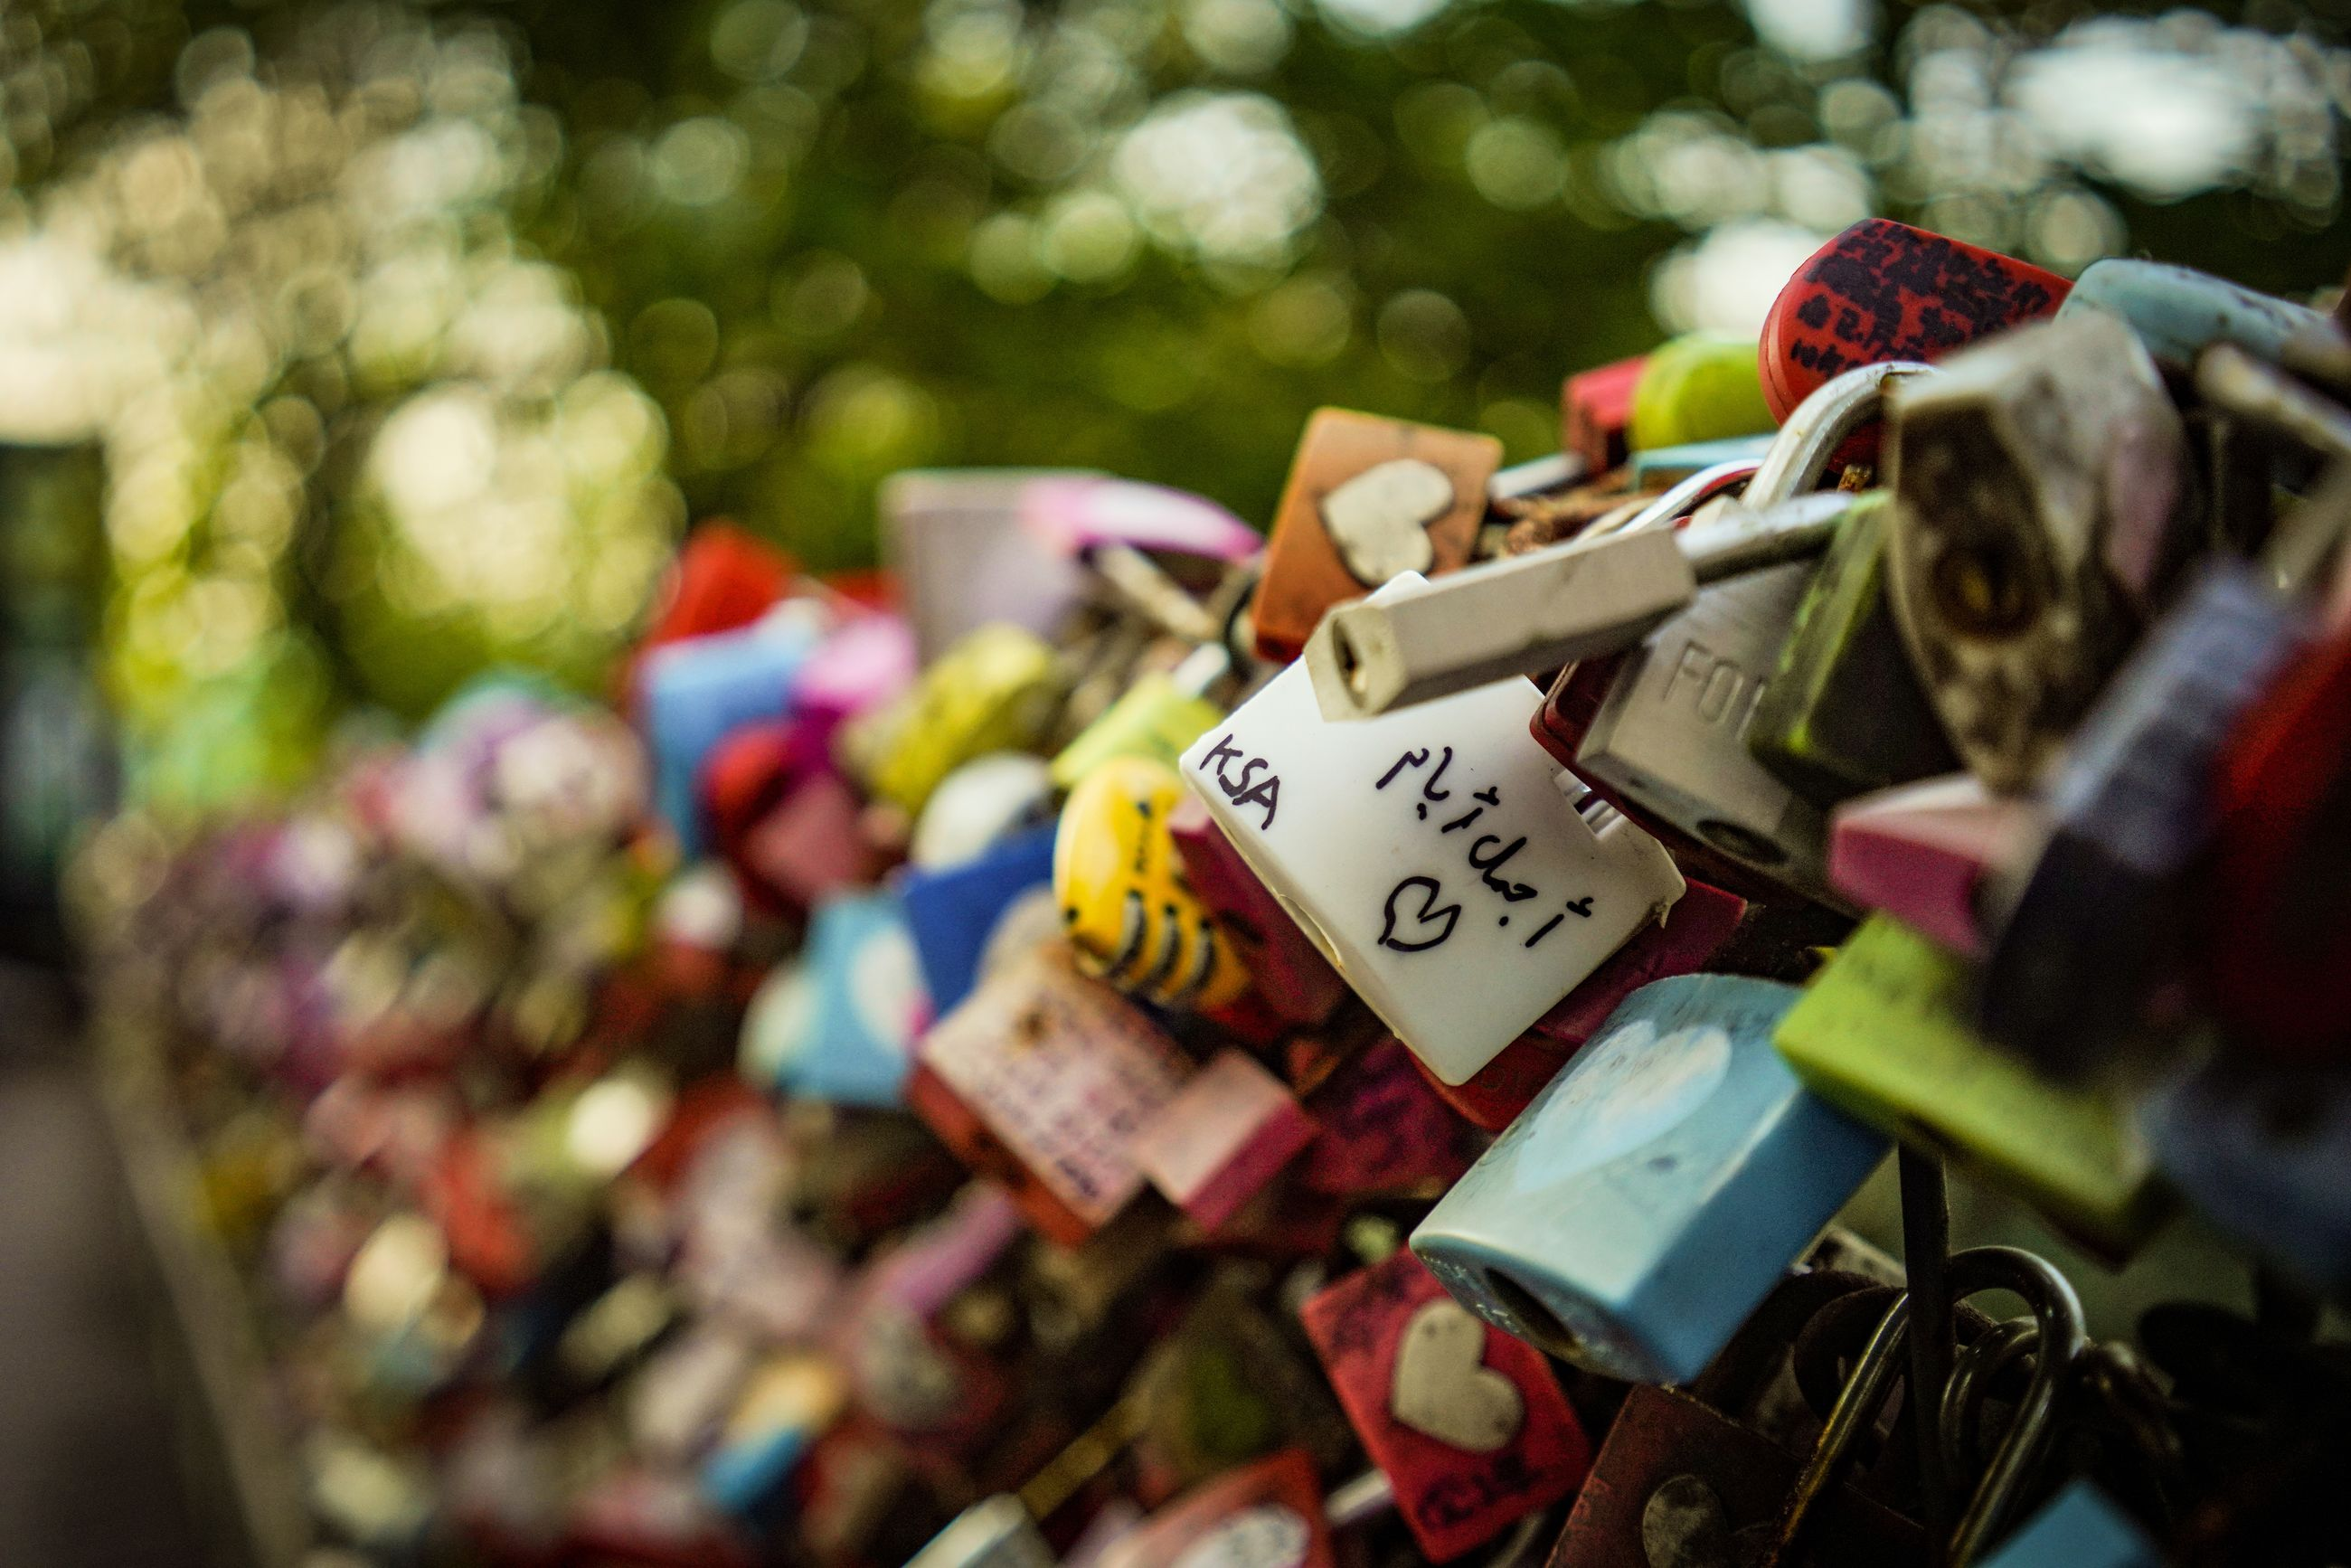 lock, padlock, large group of objects, abundance, protection, security, love, hanging, day, variation, choice, text, multi colored, love lock, safety, close-up, focus on foreground, no people, emotion, metal, positive emotion, outdoors